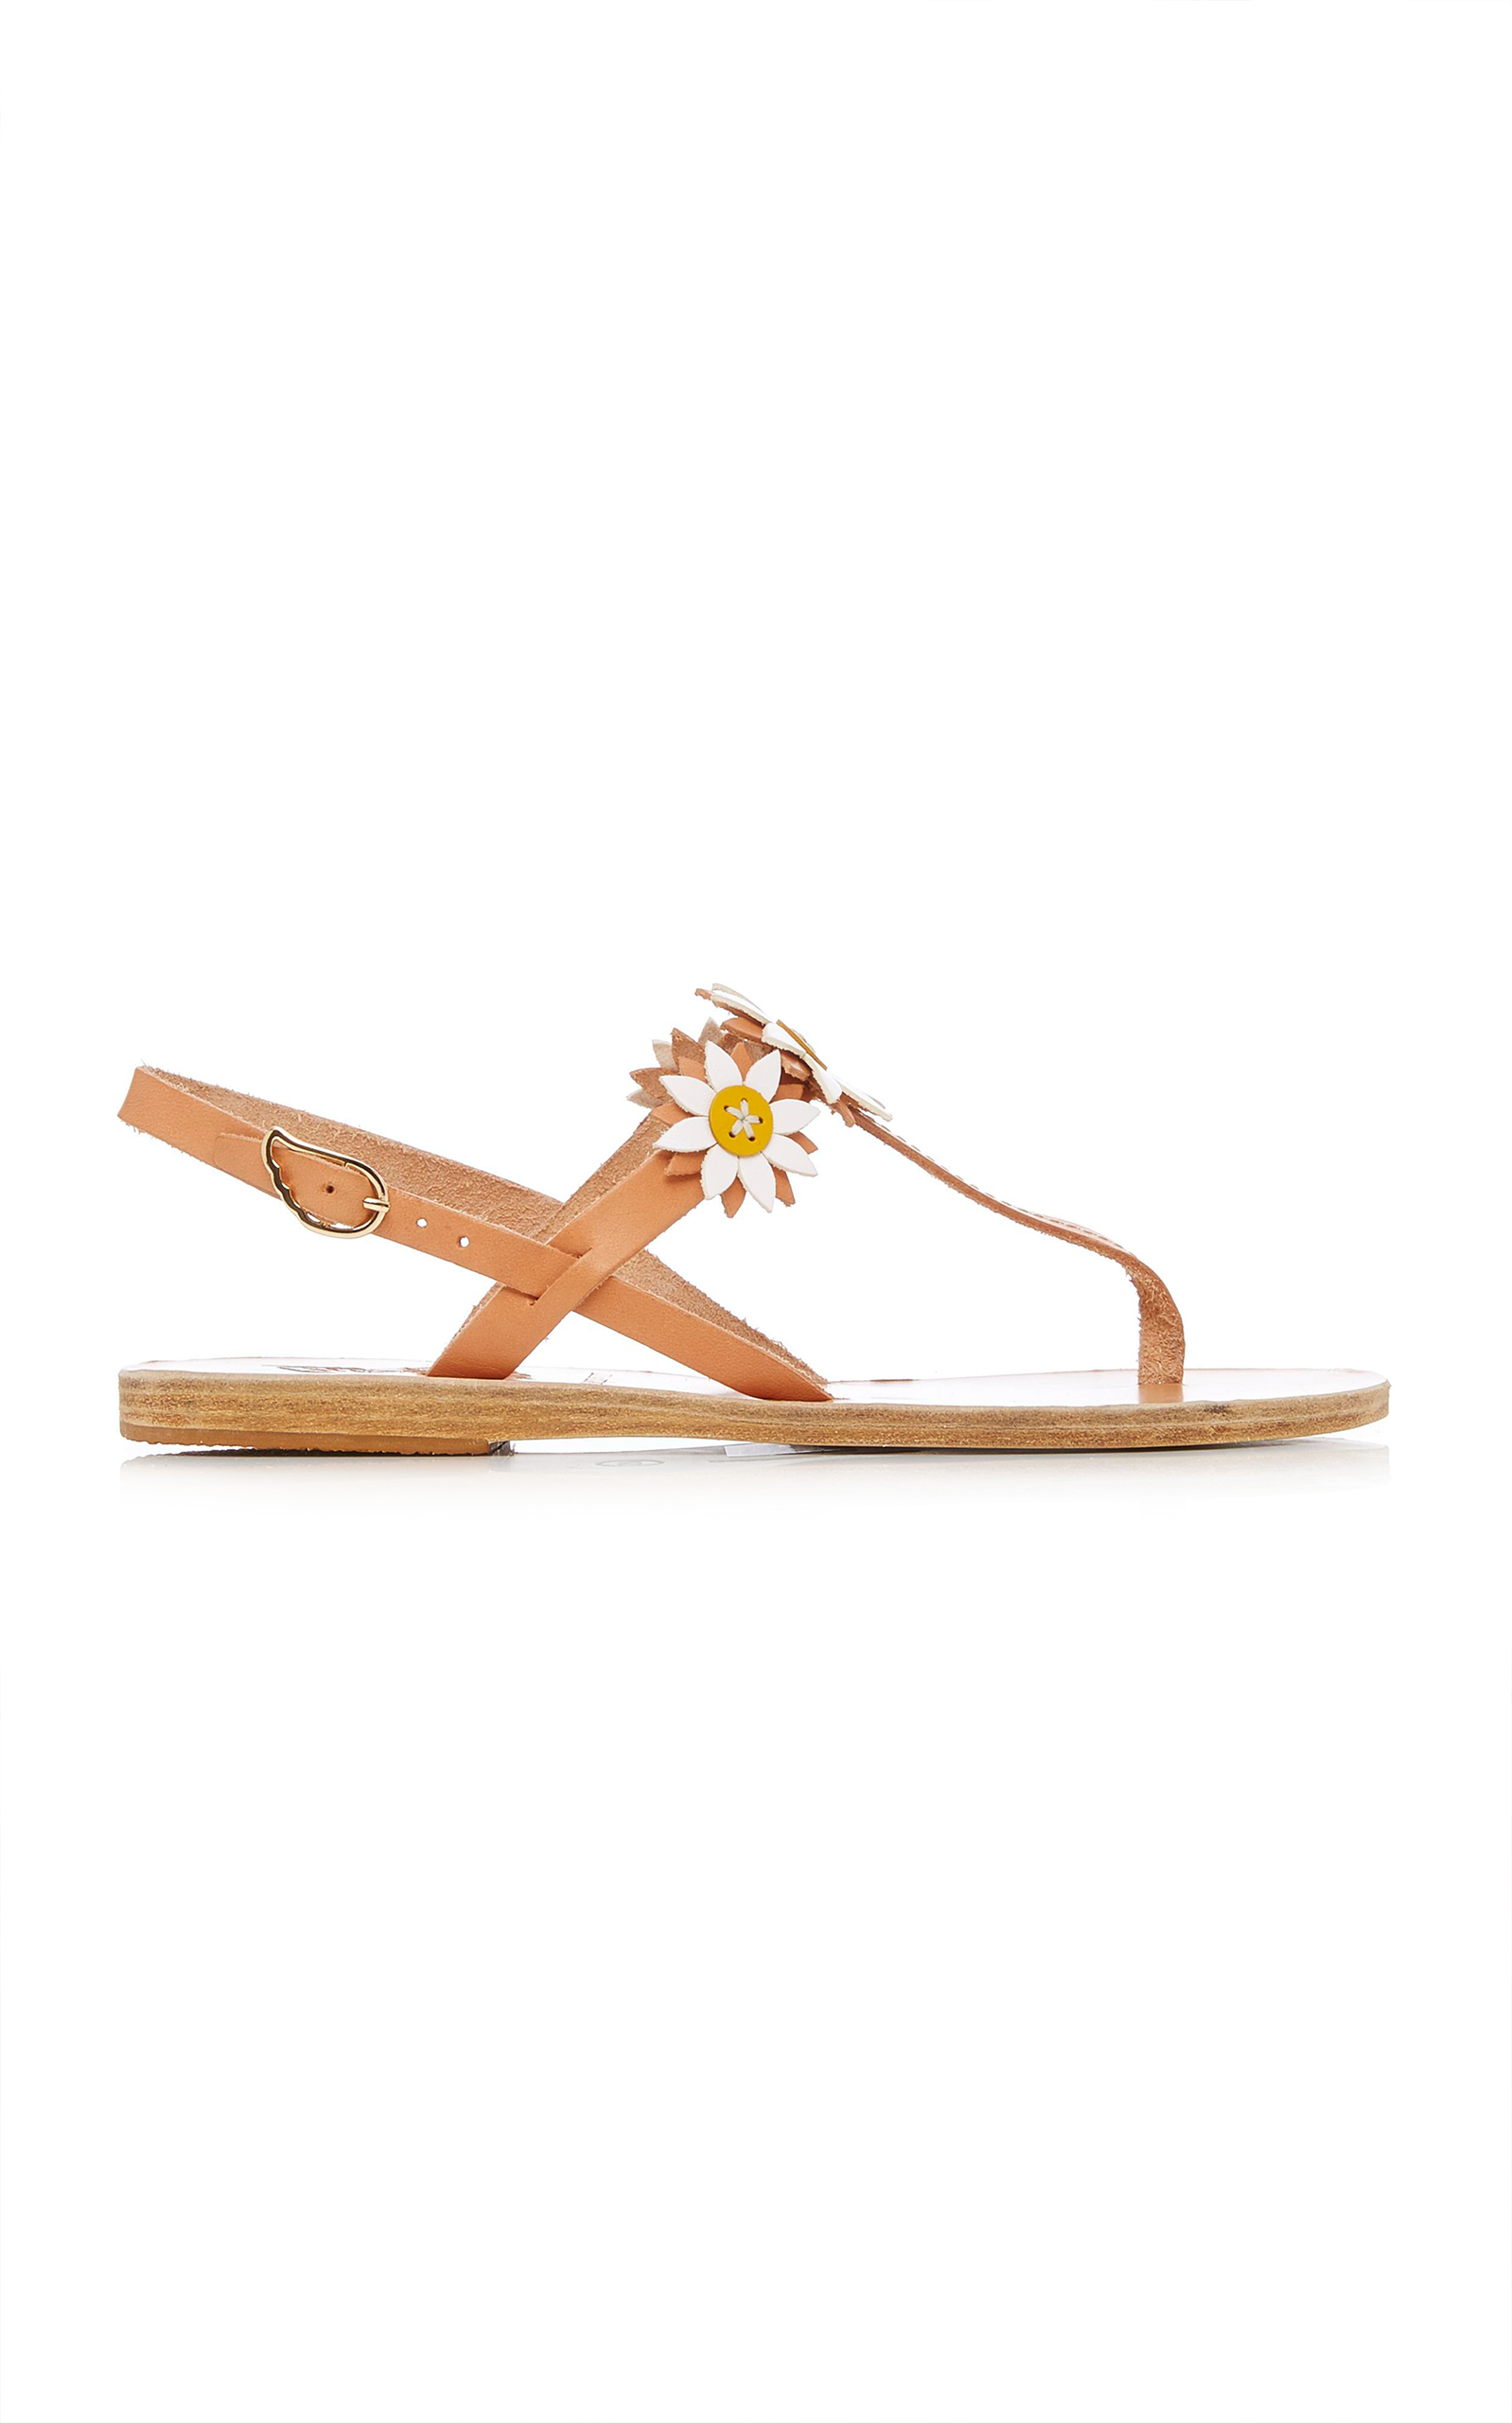 New Styles Sale Online Discount Websites Ancient Greek Sandals x Fabrizio Viti Sylvie sandals - Black Ancient Greek Sandals Discount Affordable KlJrKha